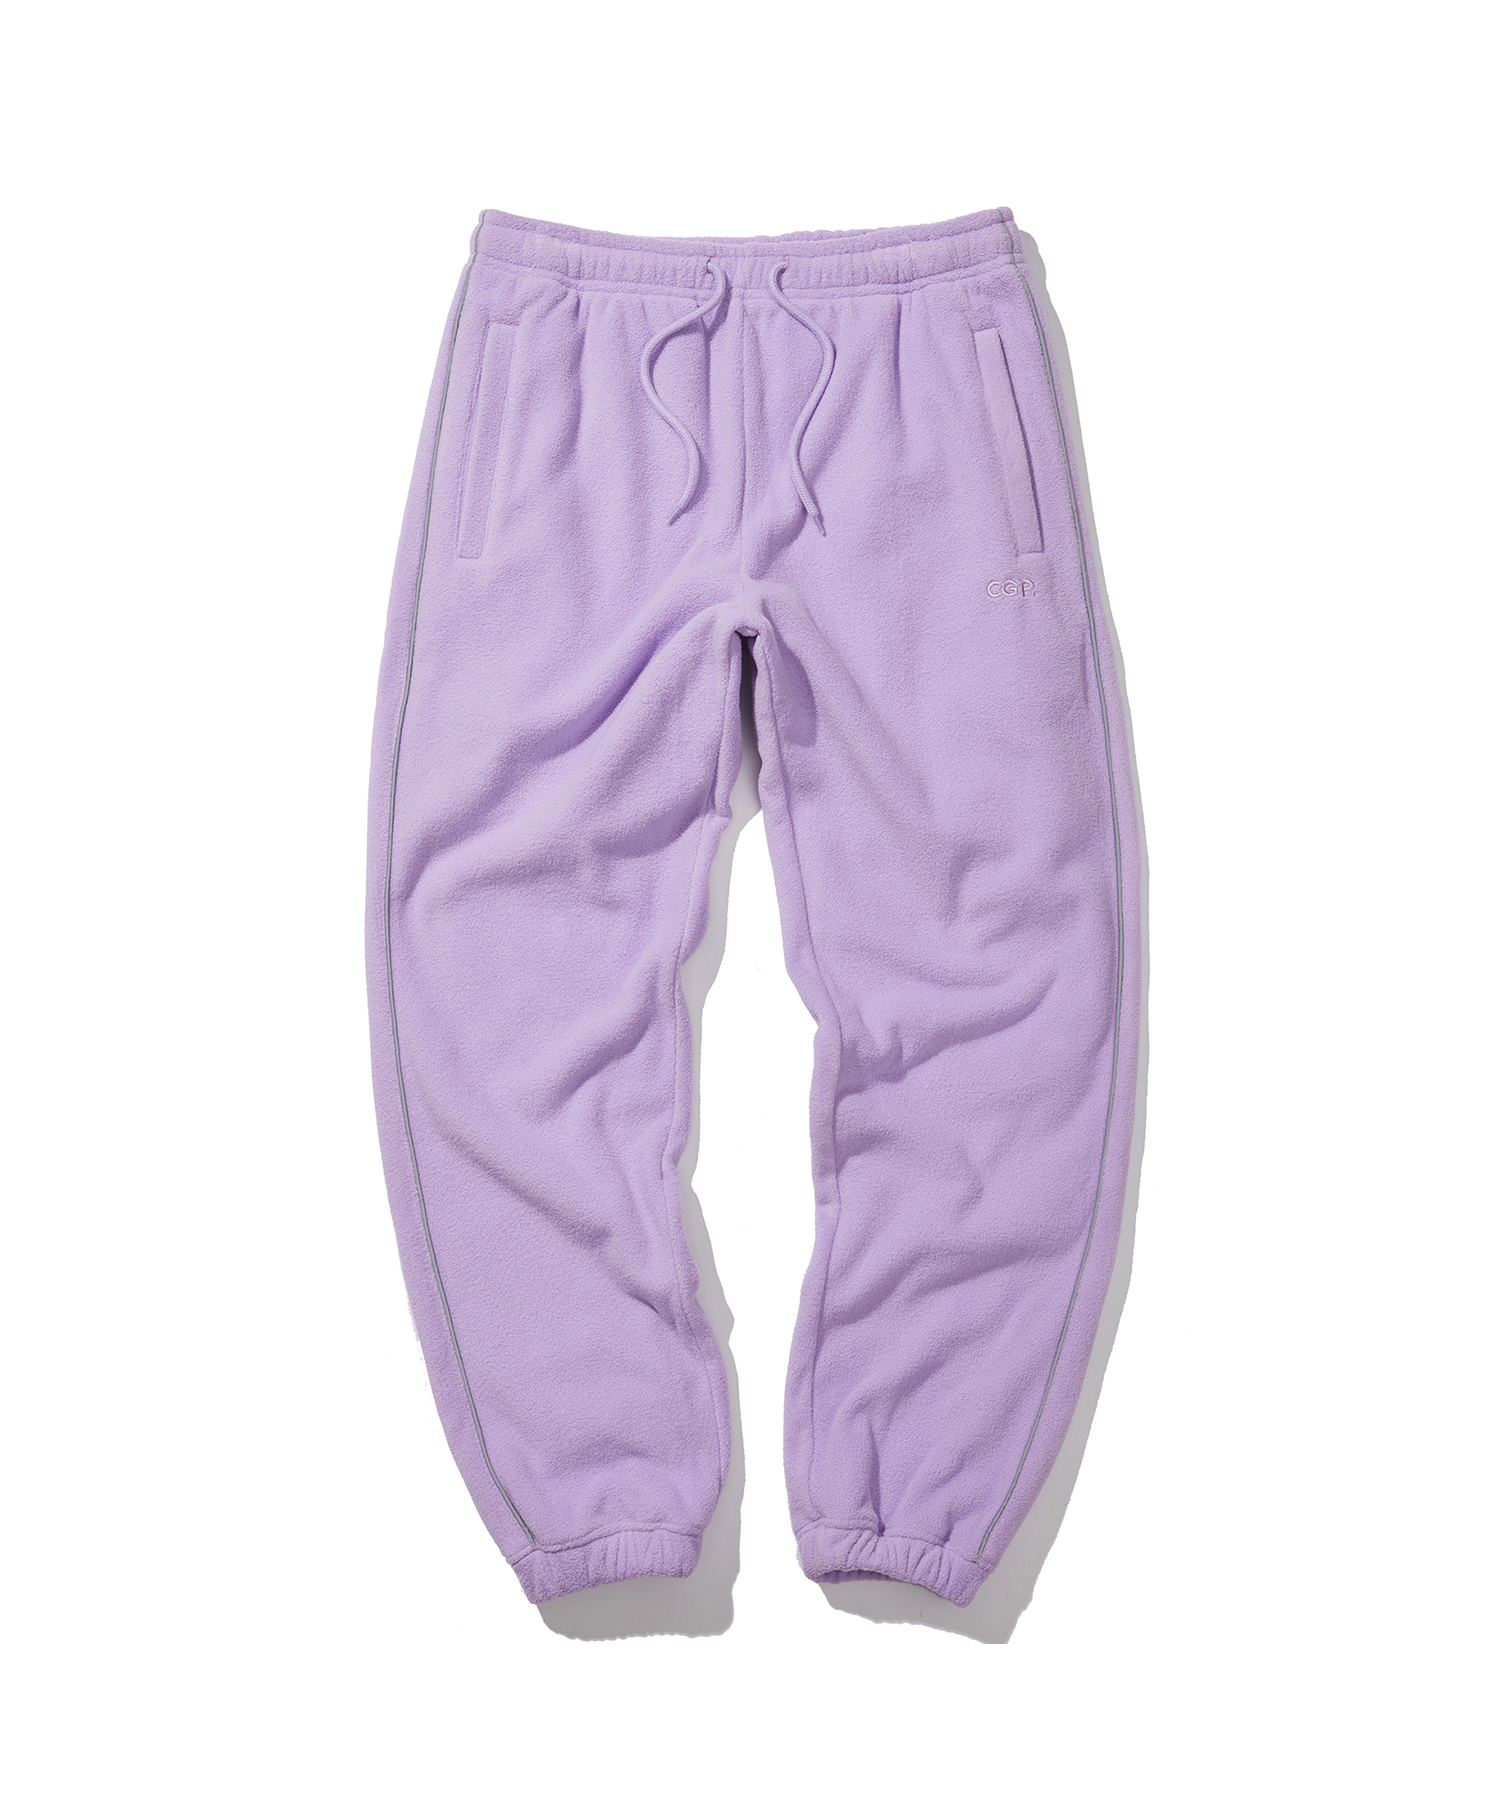 PIPING FLEECE JOGGER PANTS - LV